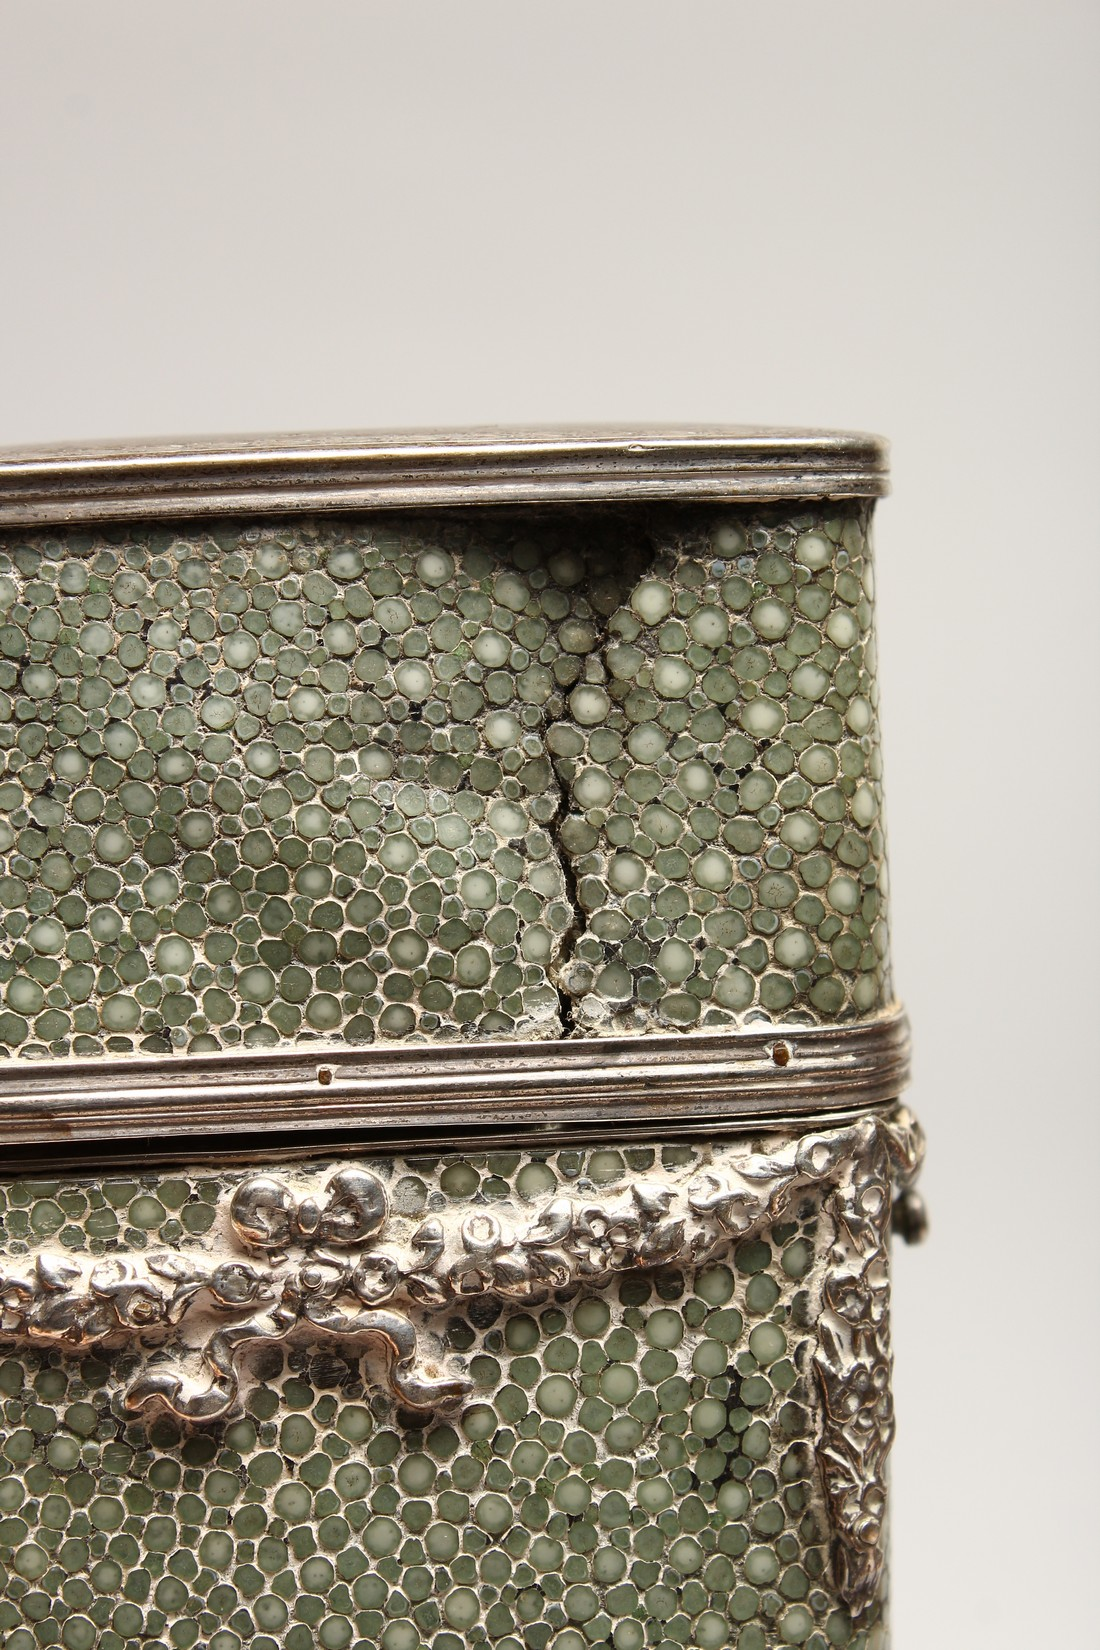 A GEORGIAN WHISKY FLASK in a shagreen case, with silver garlands 6.5ins long (some damage). - Image 5 of 8